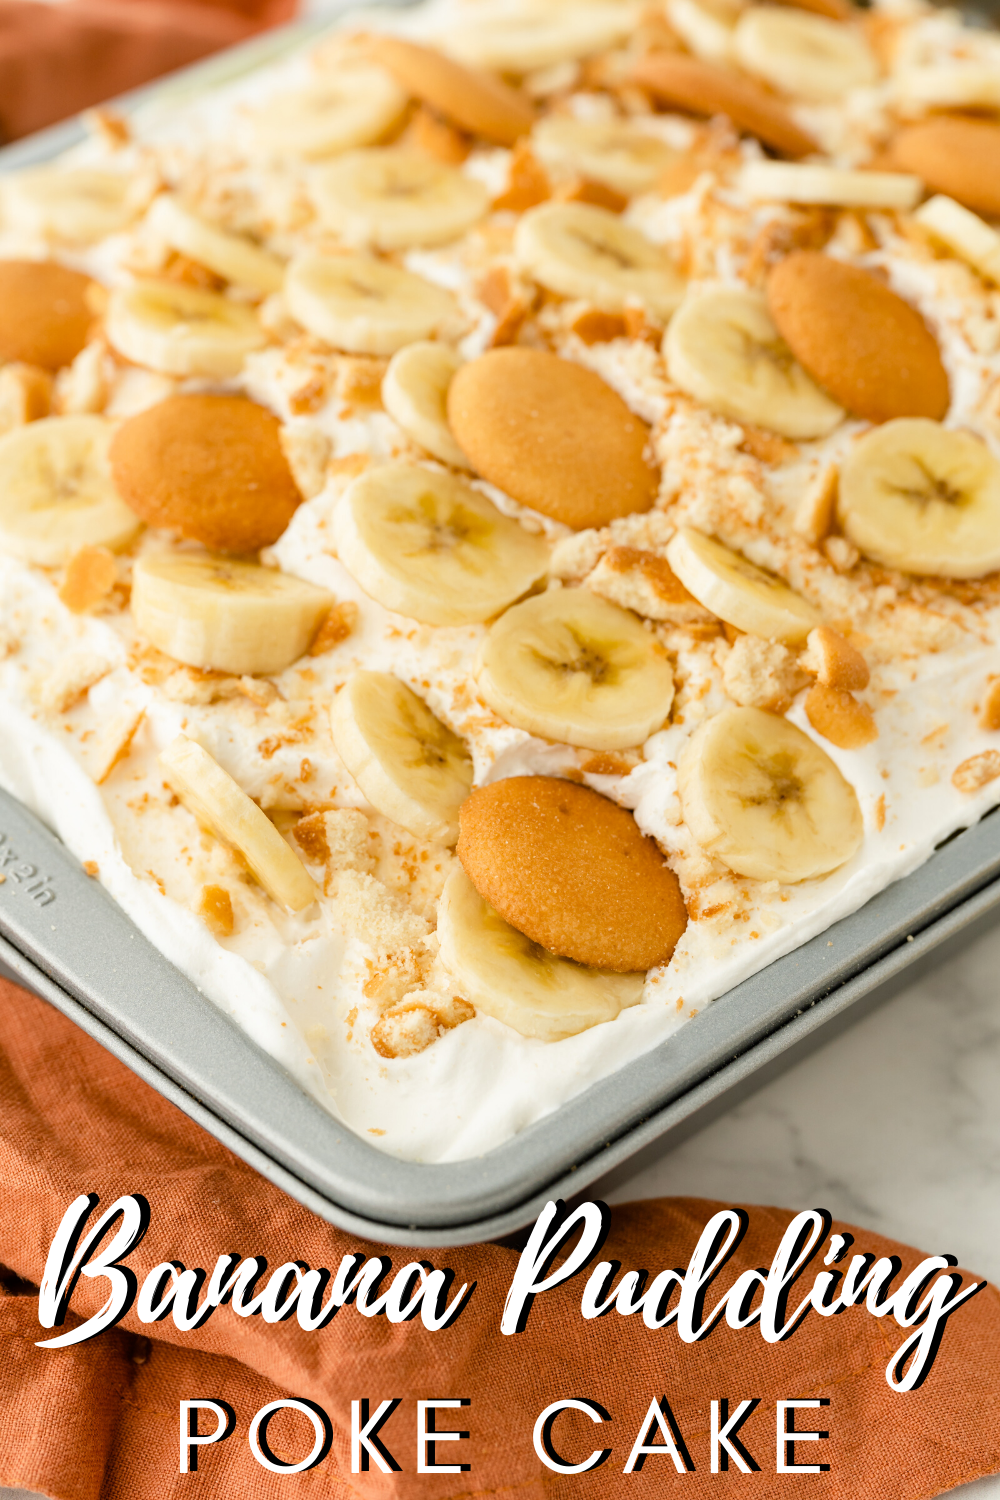 Enjoy the classic flavors of banana pudding in this moist and delicious Banana Pudding Poke Cake! via @nmburk